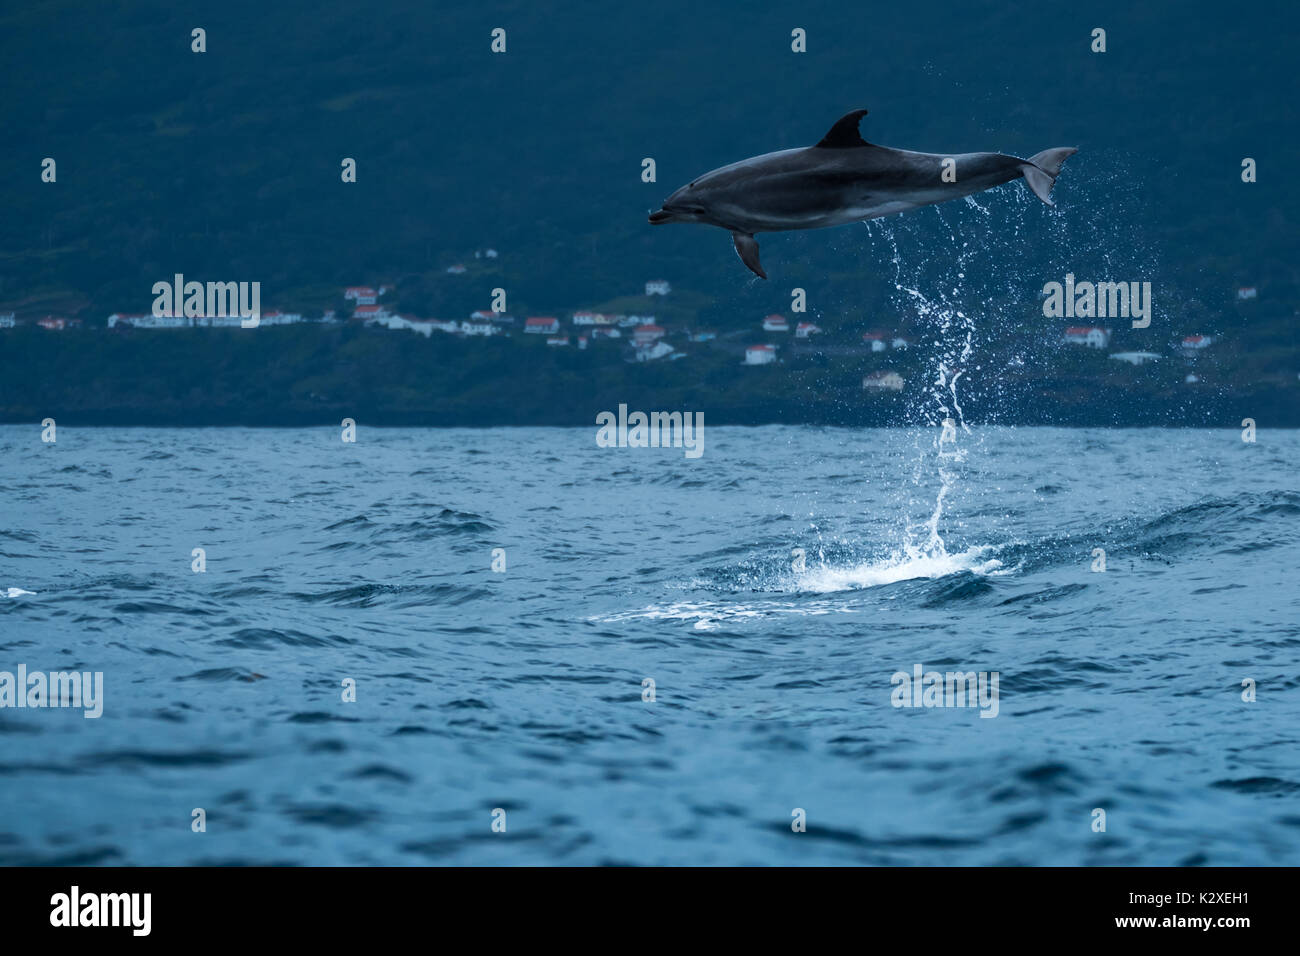 A bottlenose dolphin (Tursiops truncatus) leaps w metres out of the water in the Atlantic Ocean near to Pico Island in the Azores archipelago. - Stock Image